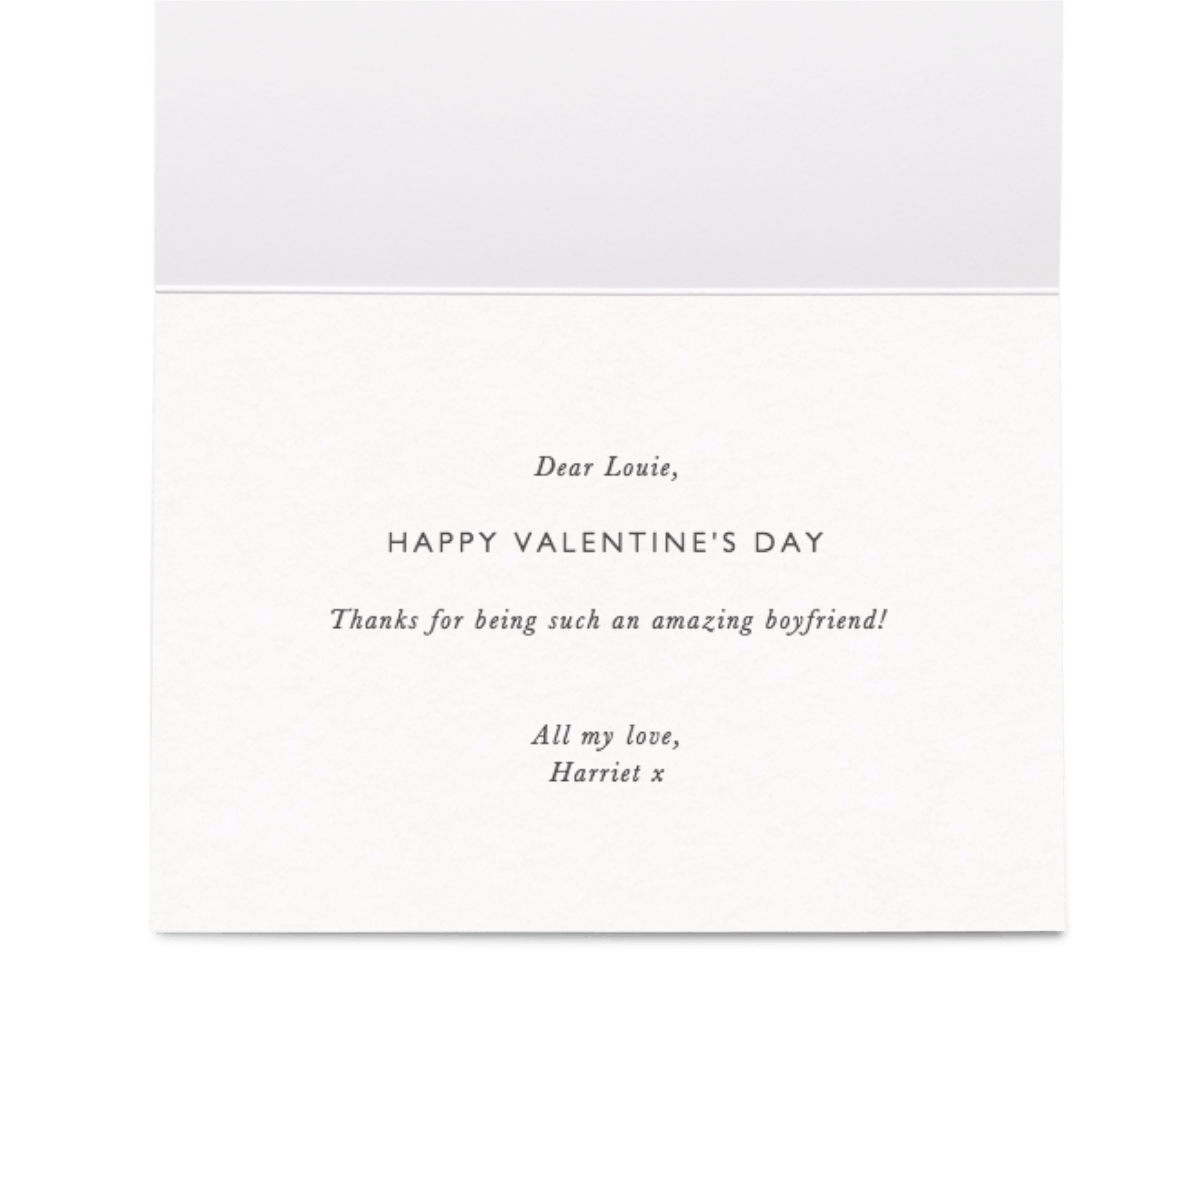 Https%3a%2f%2fwww.papier.com%2fproduct image%2f17269%2f20%2fhappy valentine s day calligraphy 4536 interieur 1485521963.png?ixlib=rb 1.1